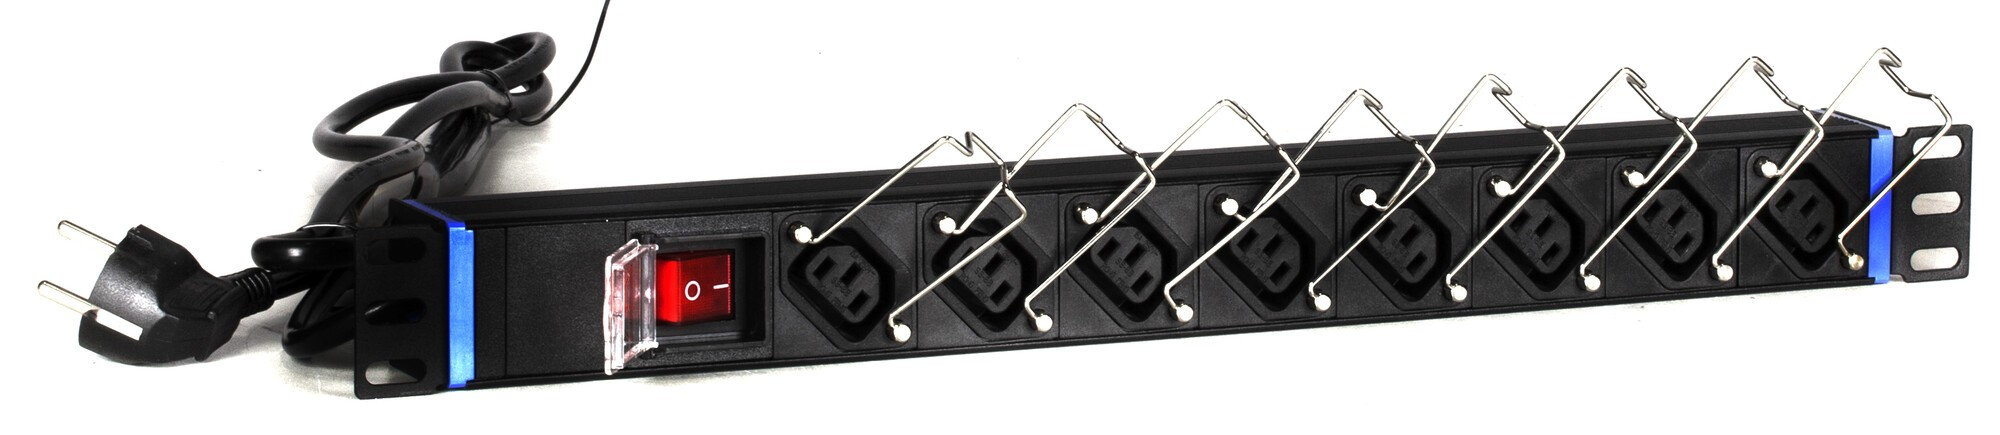 Afbeelding van 19 inch 8 way C13 power strip